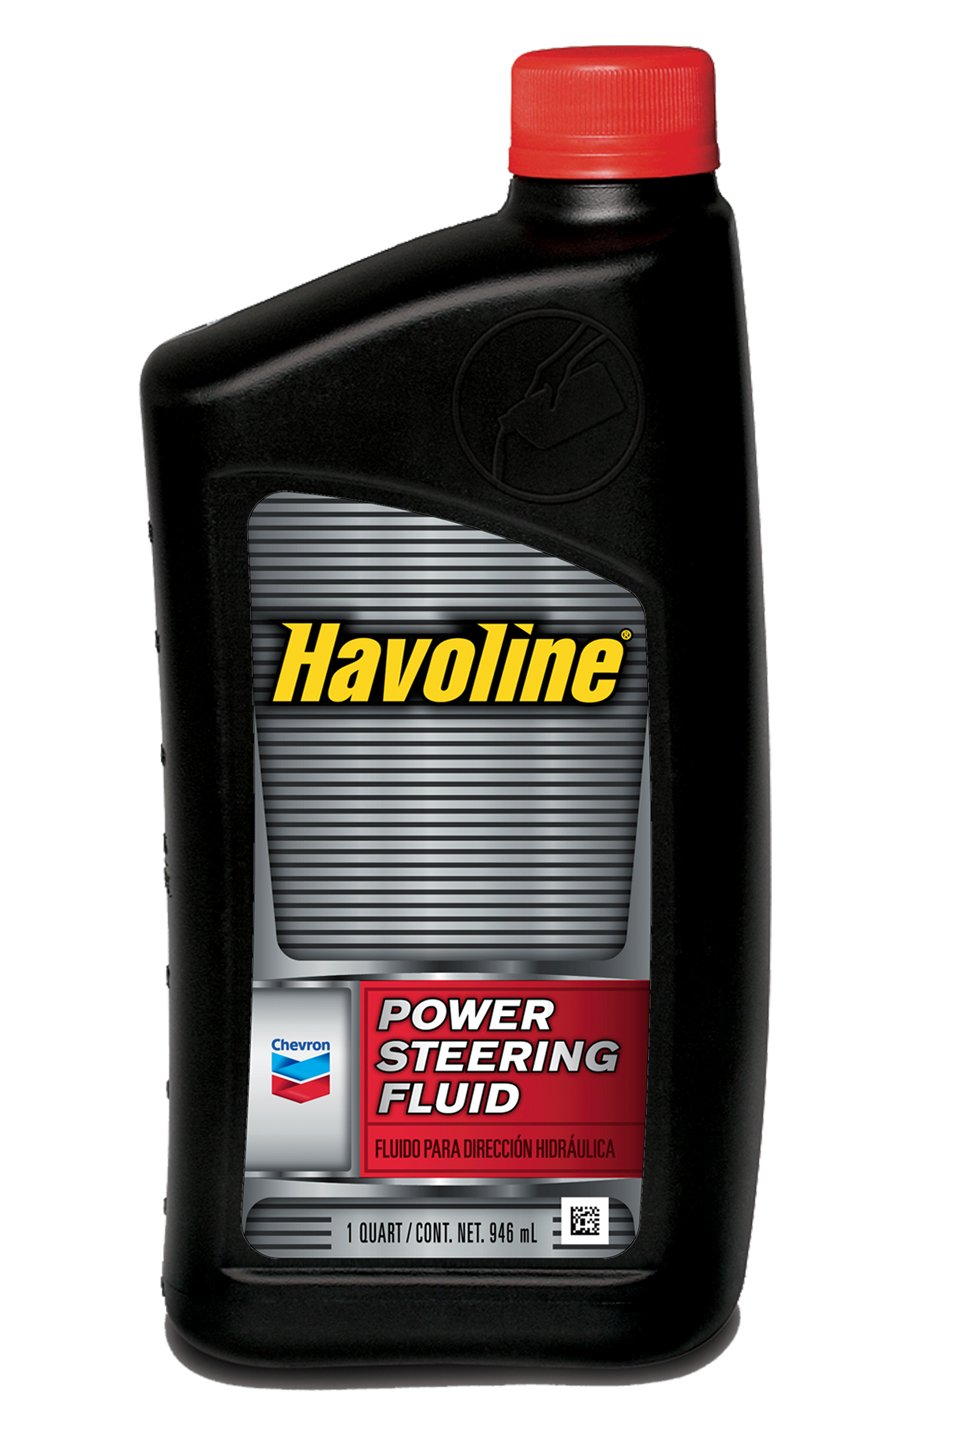 Havoline (221806721-12PK) Power Steering Fluid - 1 Quart, (Pack of 12)